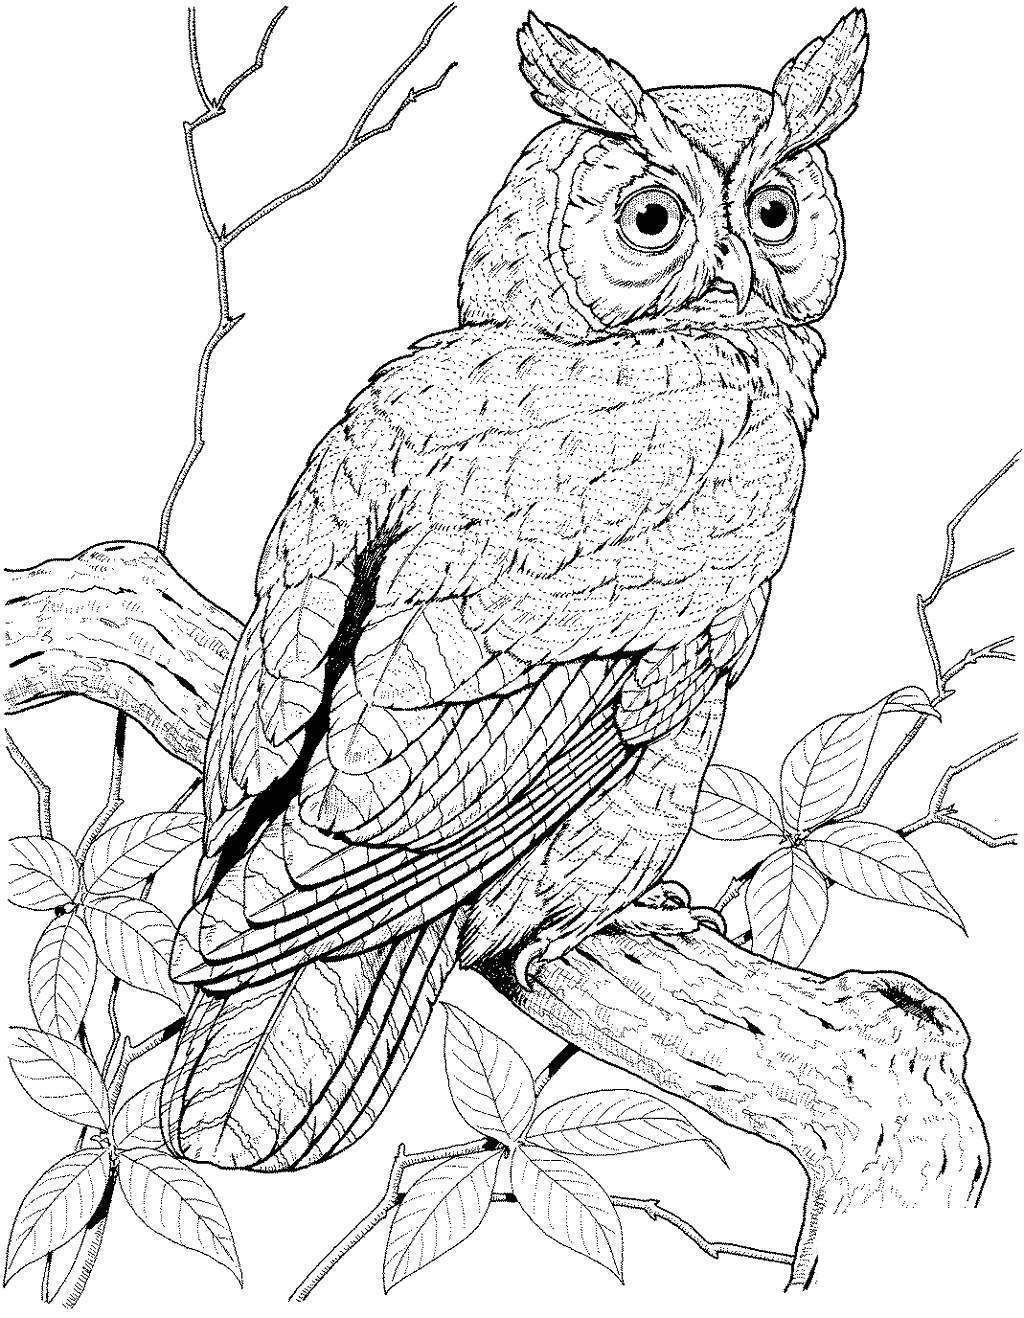 Snowy Owl Coloring Pages Owls For Kids Free Printable Coloring Pages